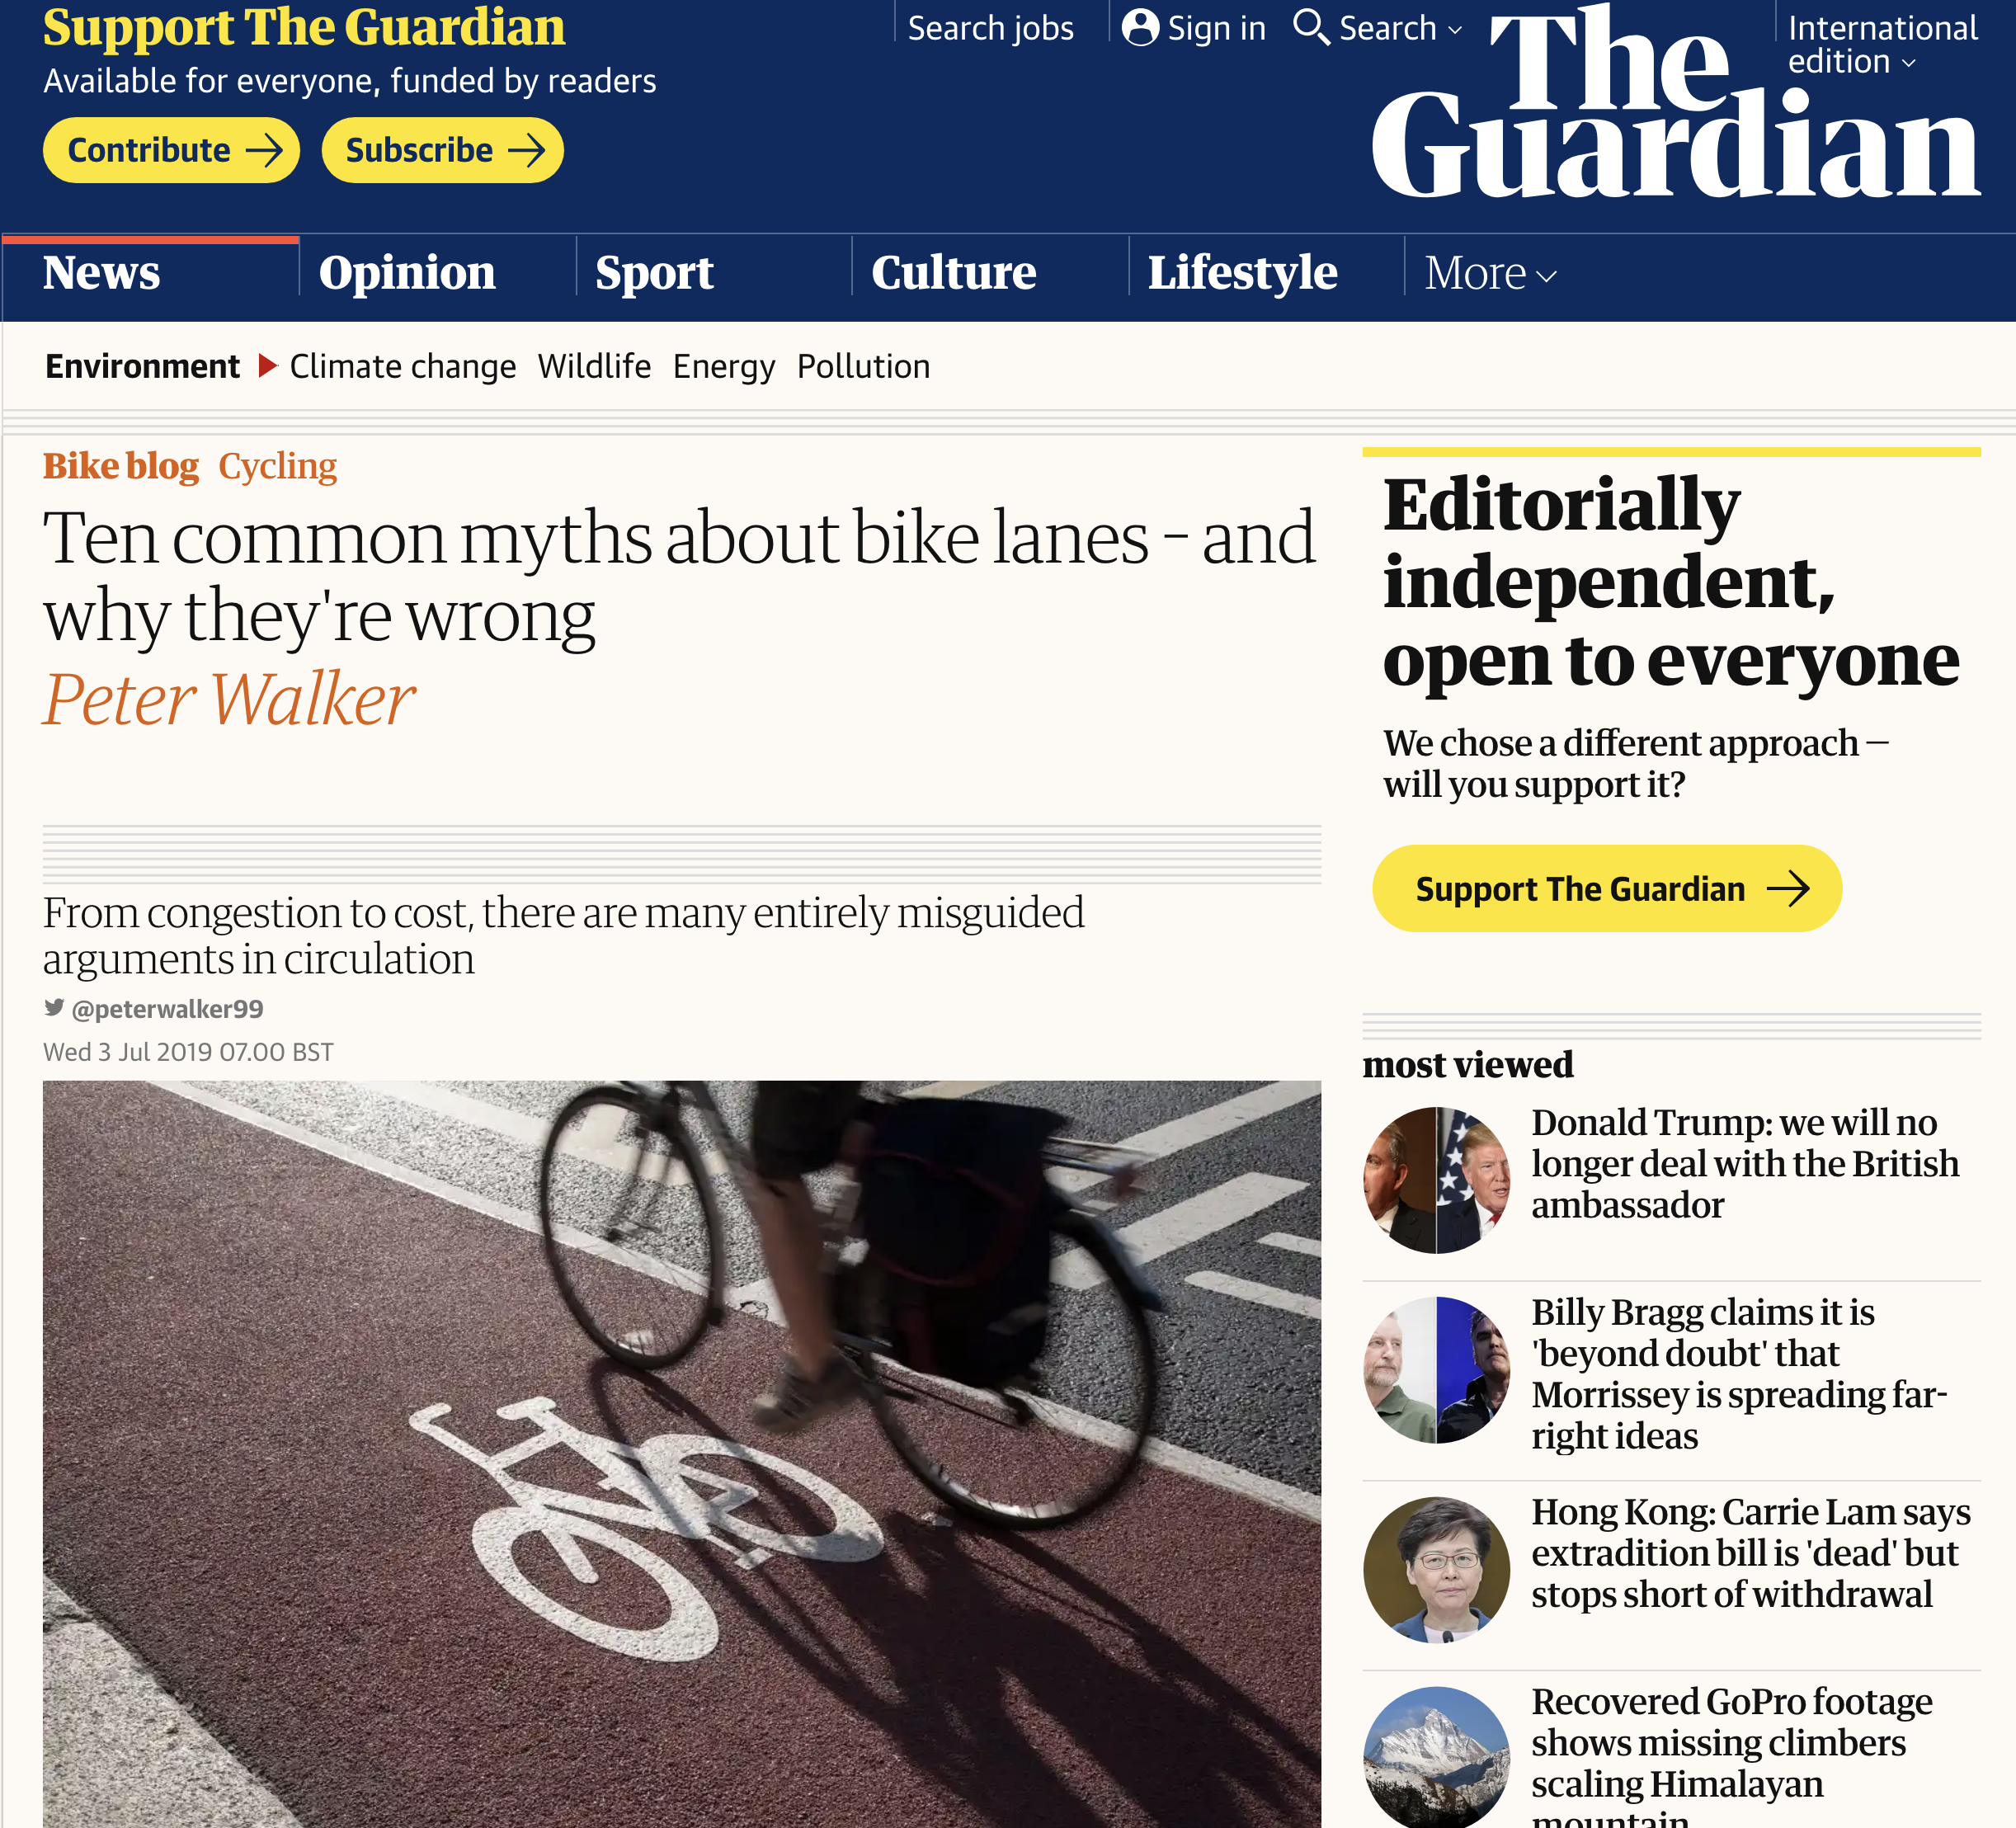 Guardian article  on 'ten common myths about bike lanes - and why they're wrong'